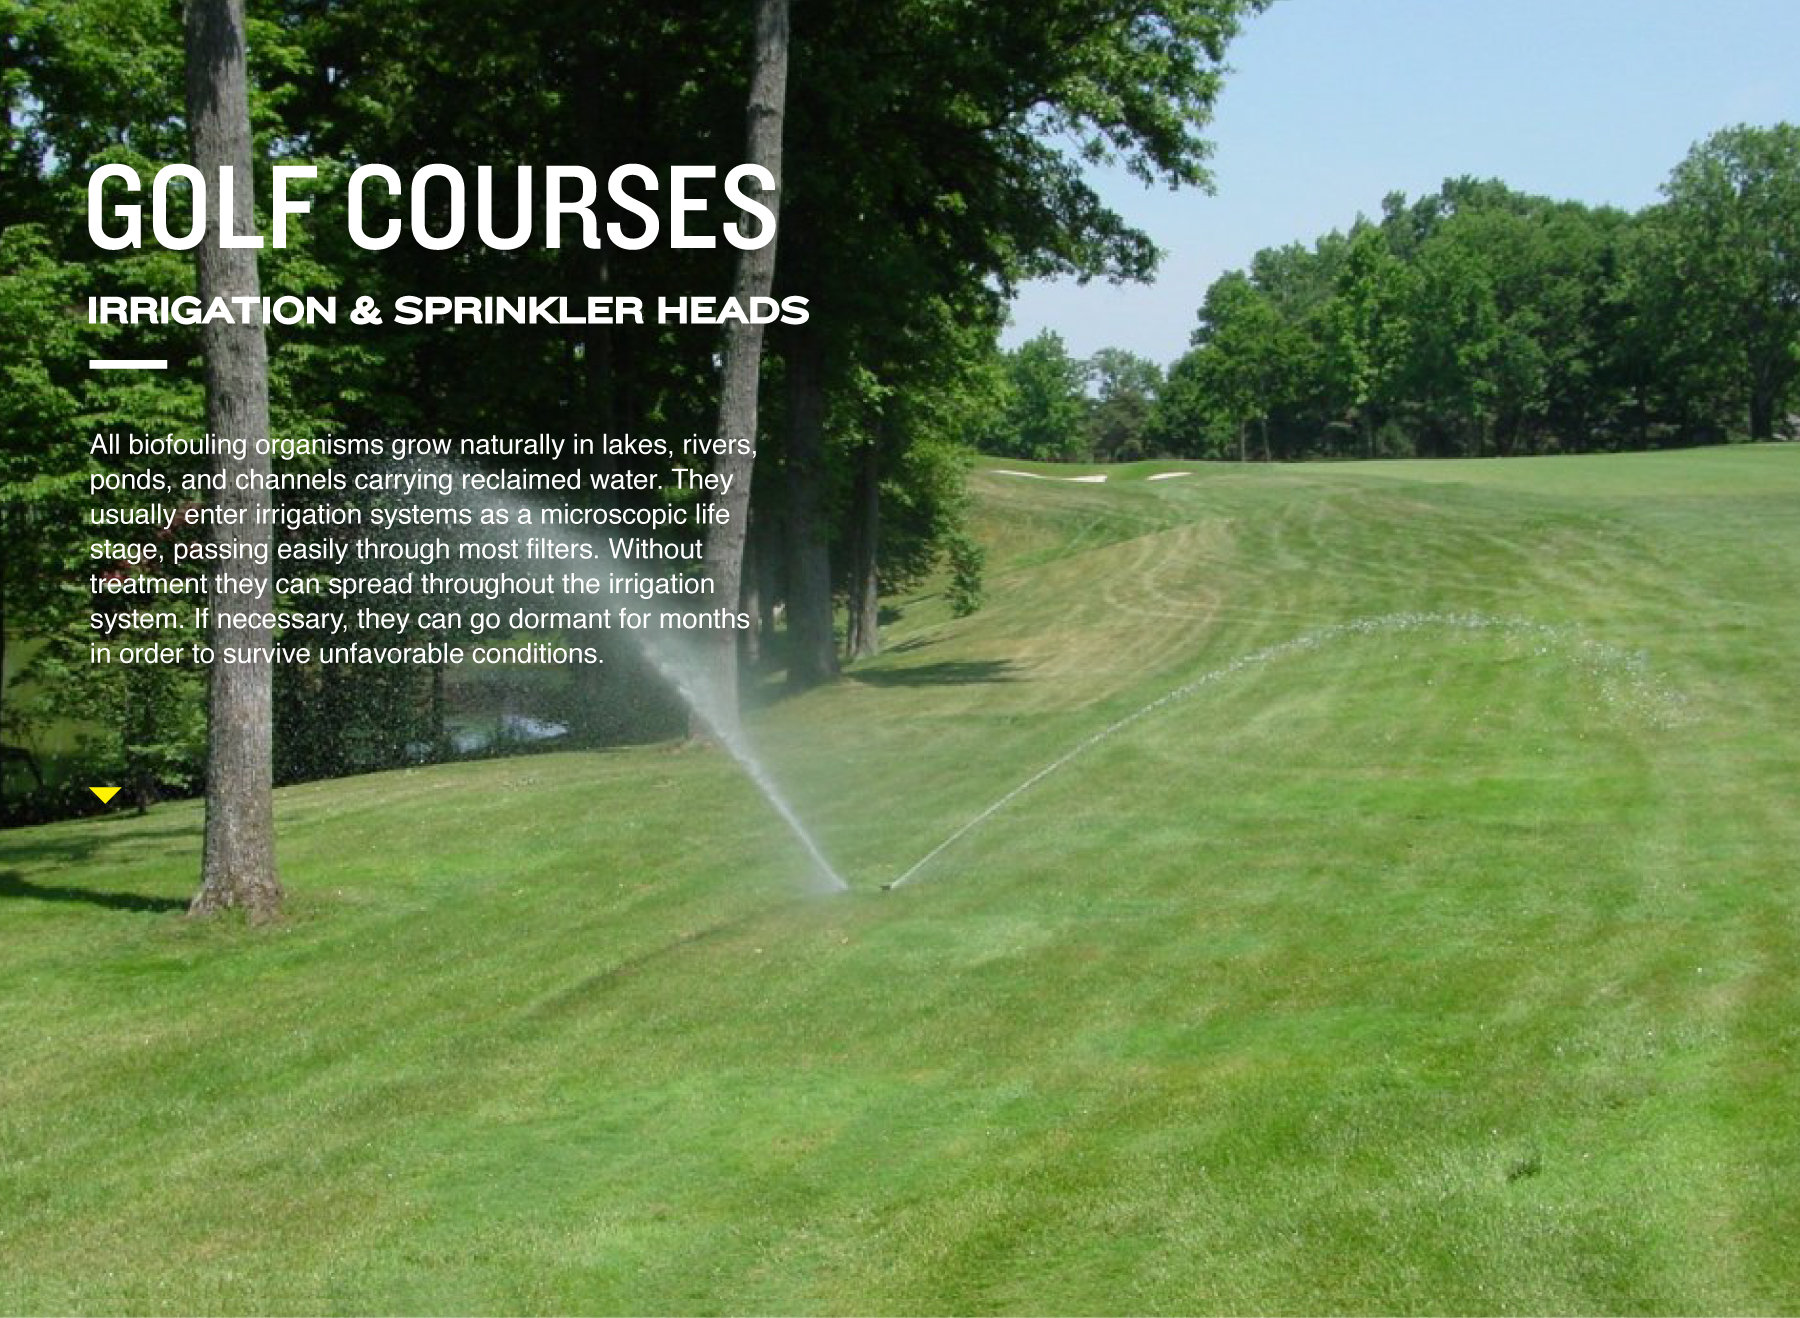 Golf Courses: Irrigation and Sprinkler Heads. All biofouling organisms grow naturally in lakes, rivers, ponds, and channels carrying reclaimed water. They usually enter irrigation system as a microscopic life stage, passing easily through most filters. Without treatment they can spread through out the irrigation system. If necessary, they can go dormant for months in order to survive unfavorable conditions.